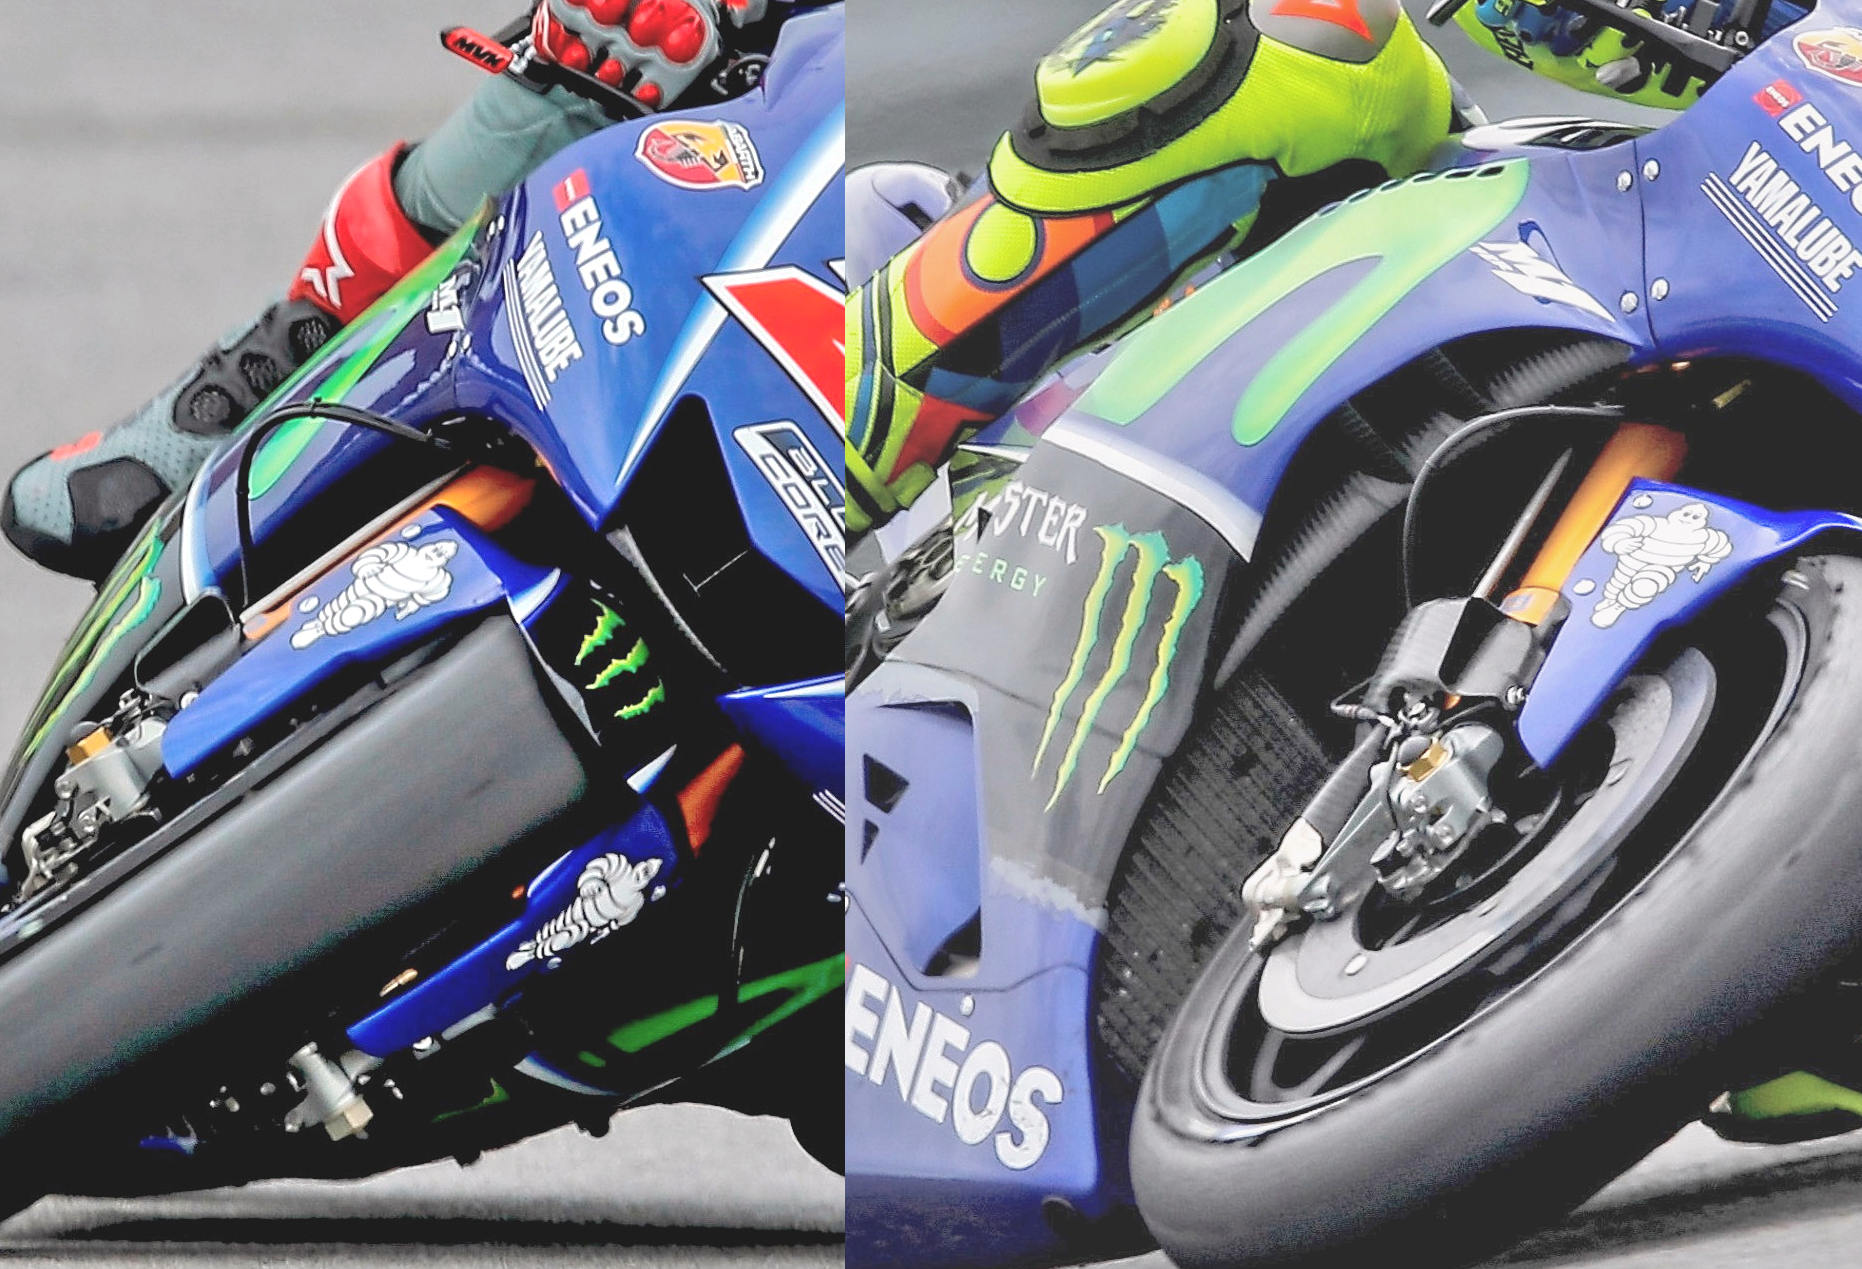 Aerodynamic Innovation By Yamaha Motogp Will Survive Ban On Wings